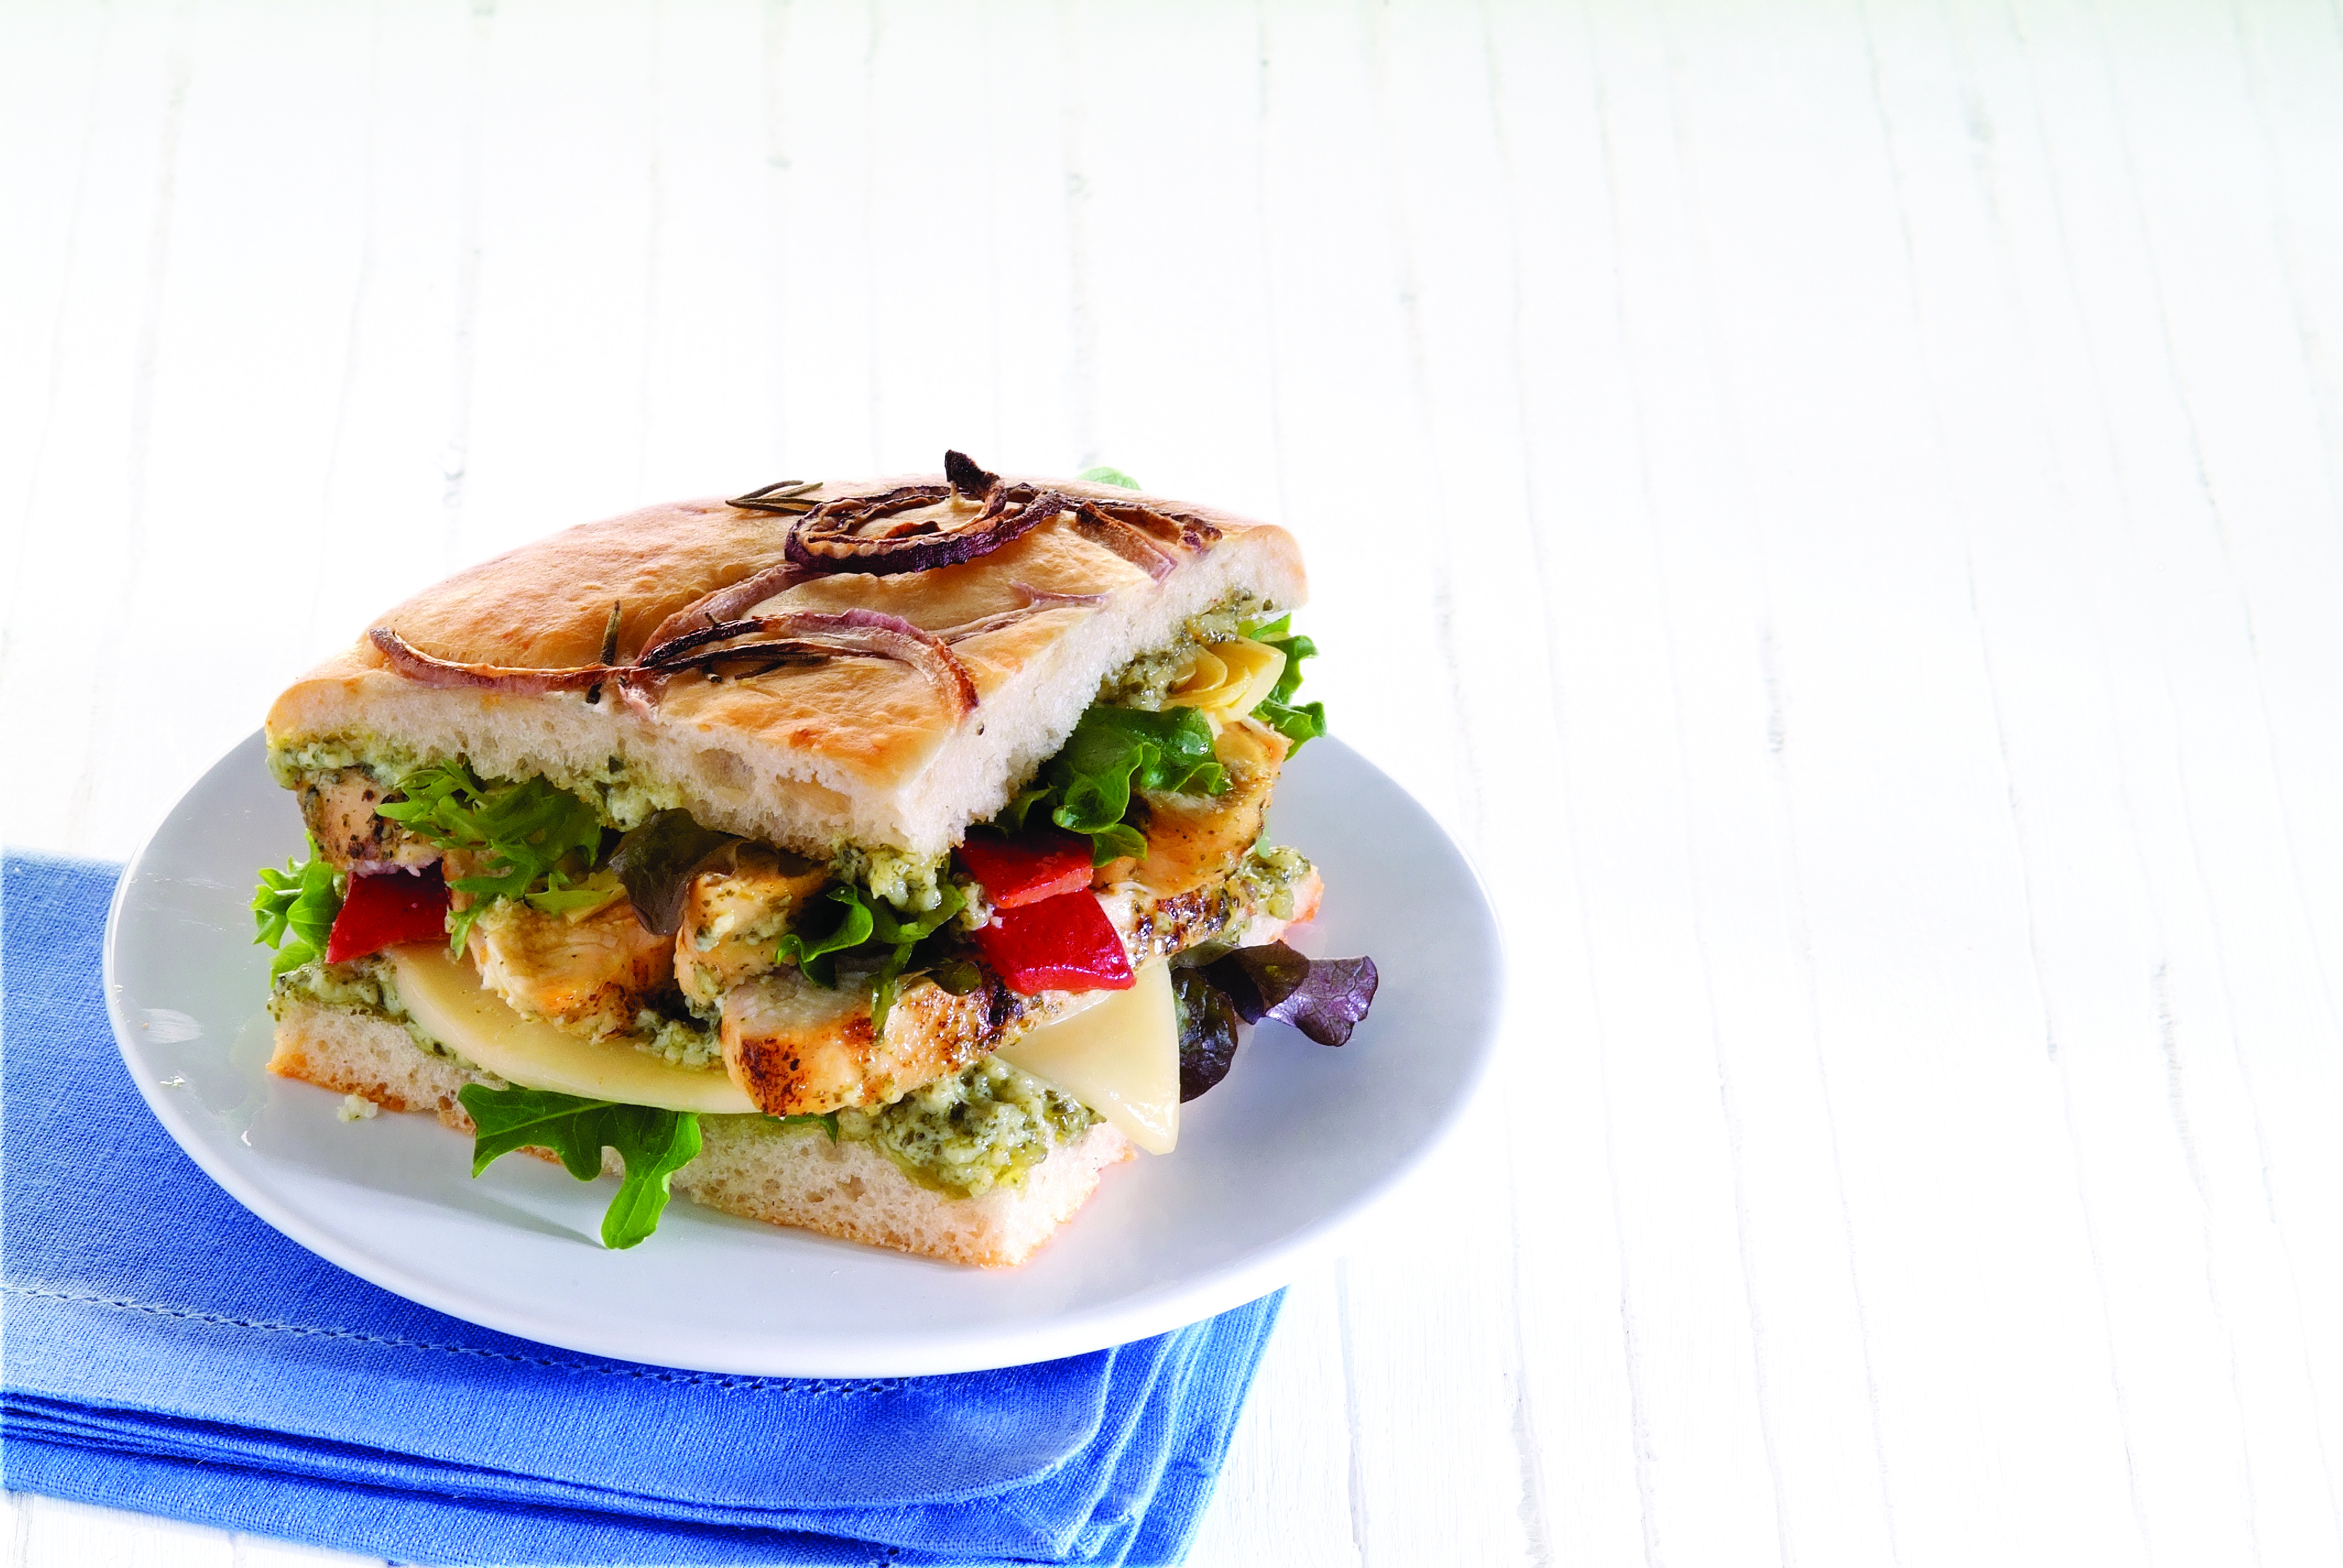 Amy's Endless Summer Sandwich